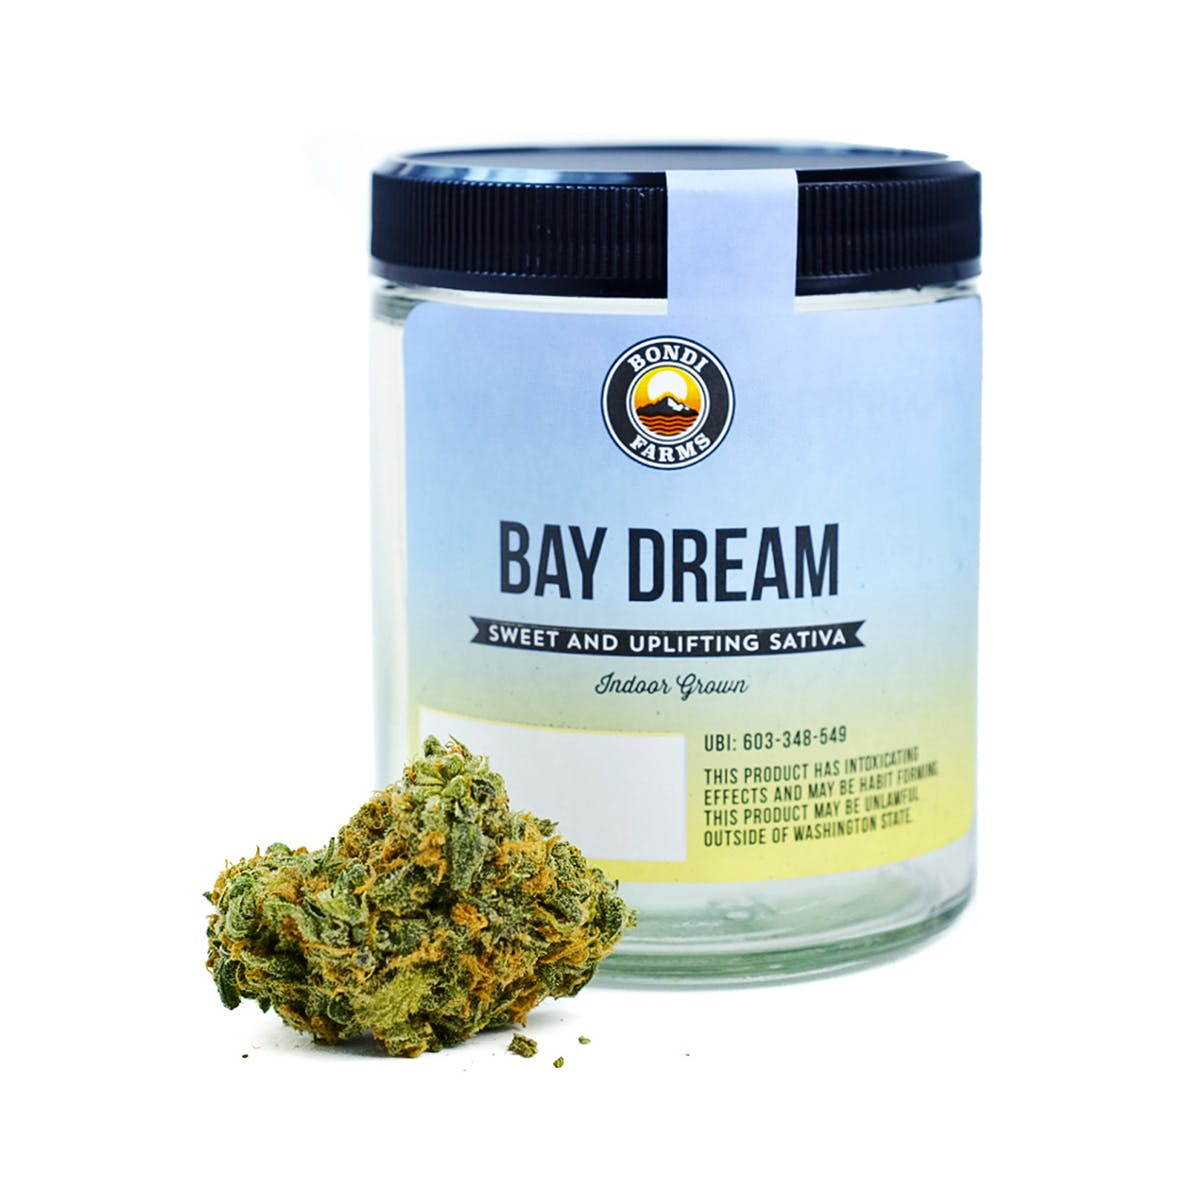 marijuana-dispensaries-legal-marijuana-superstore-in-port-orchard-bay-dream